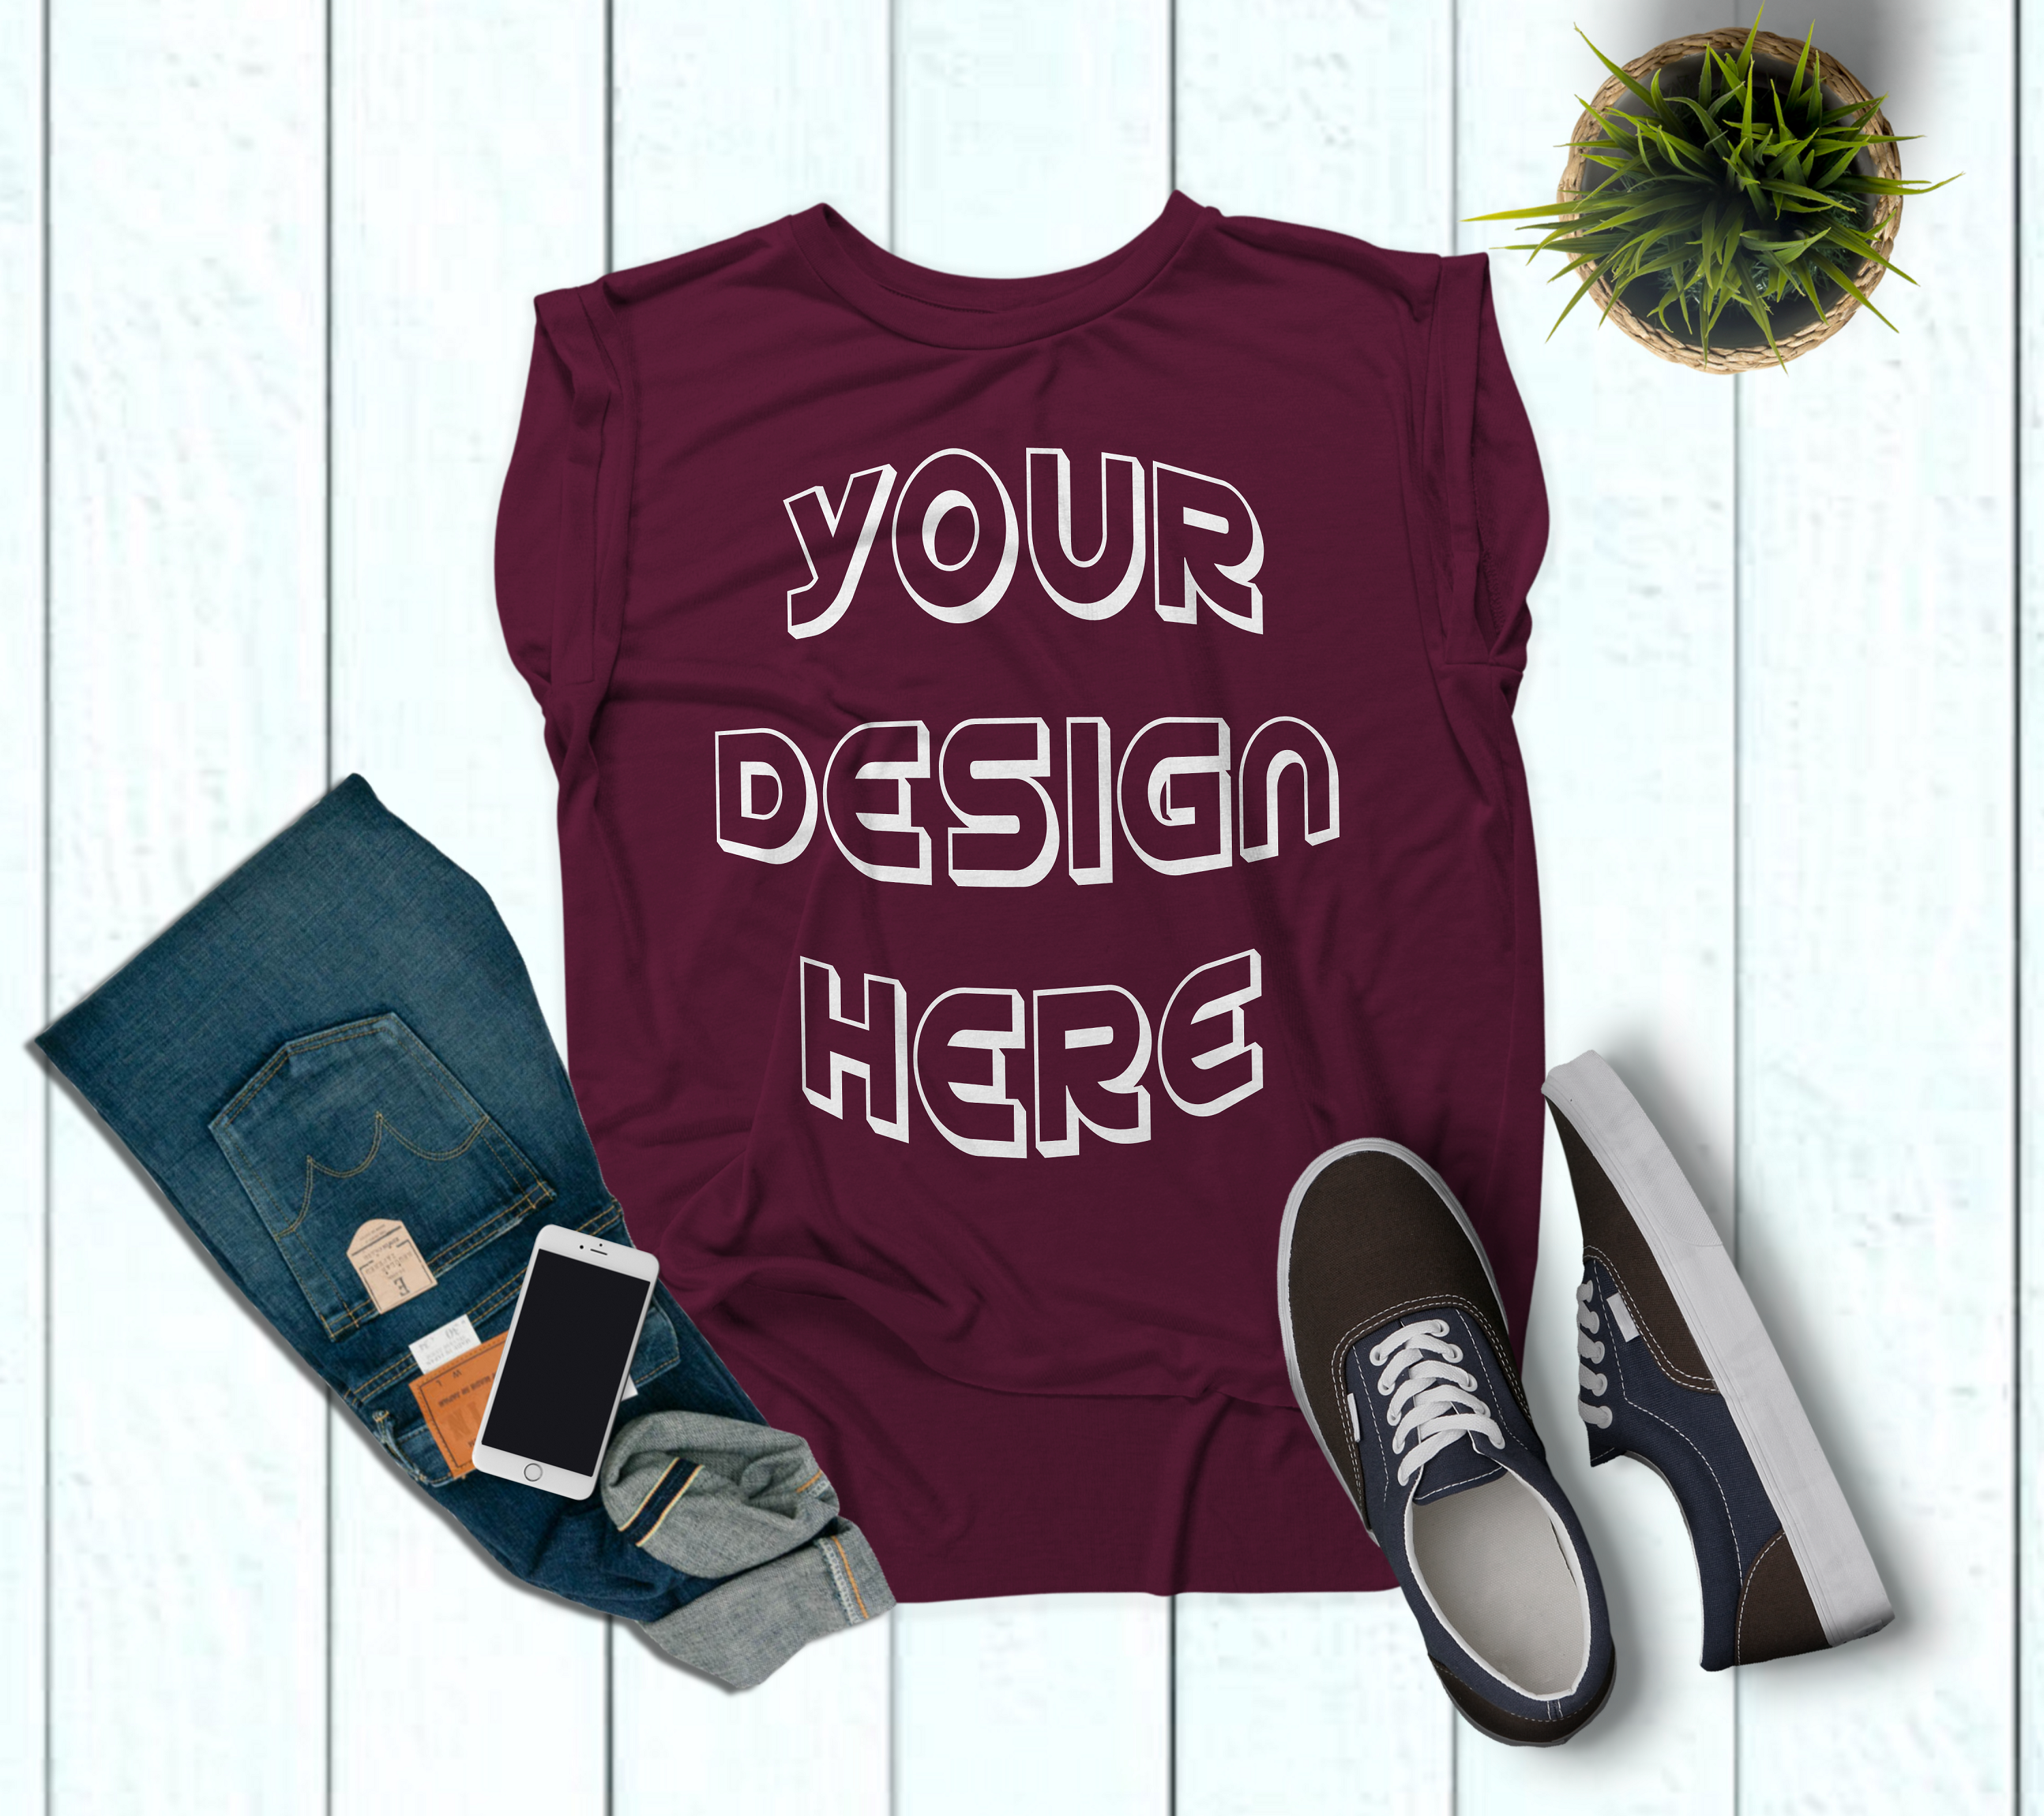 Women's Rolled Cuffs Tank Mockups - 7 example image 2